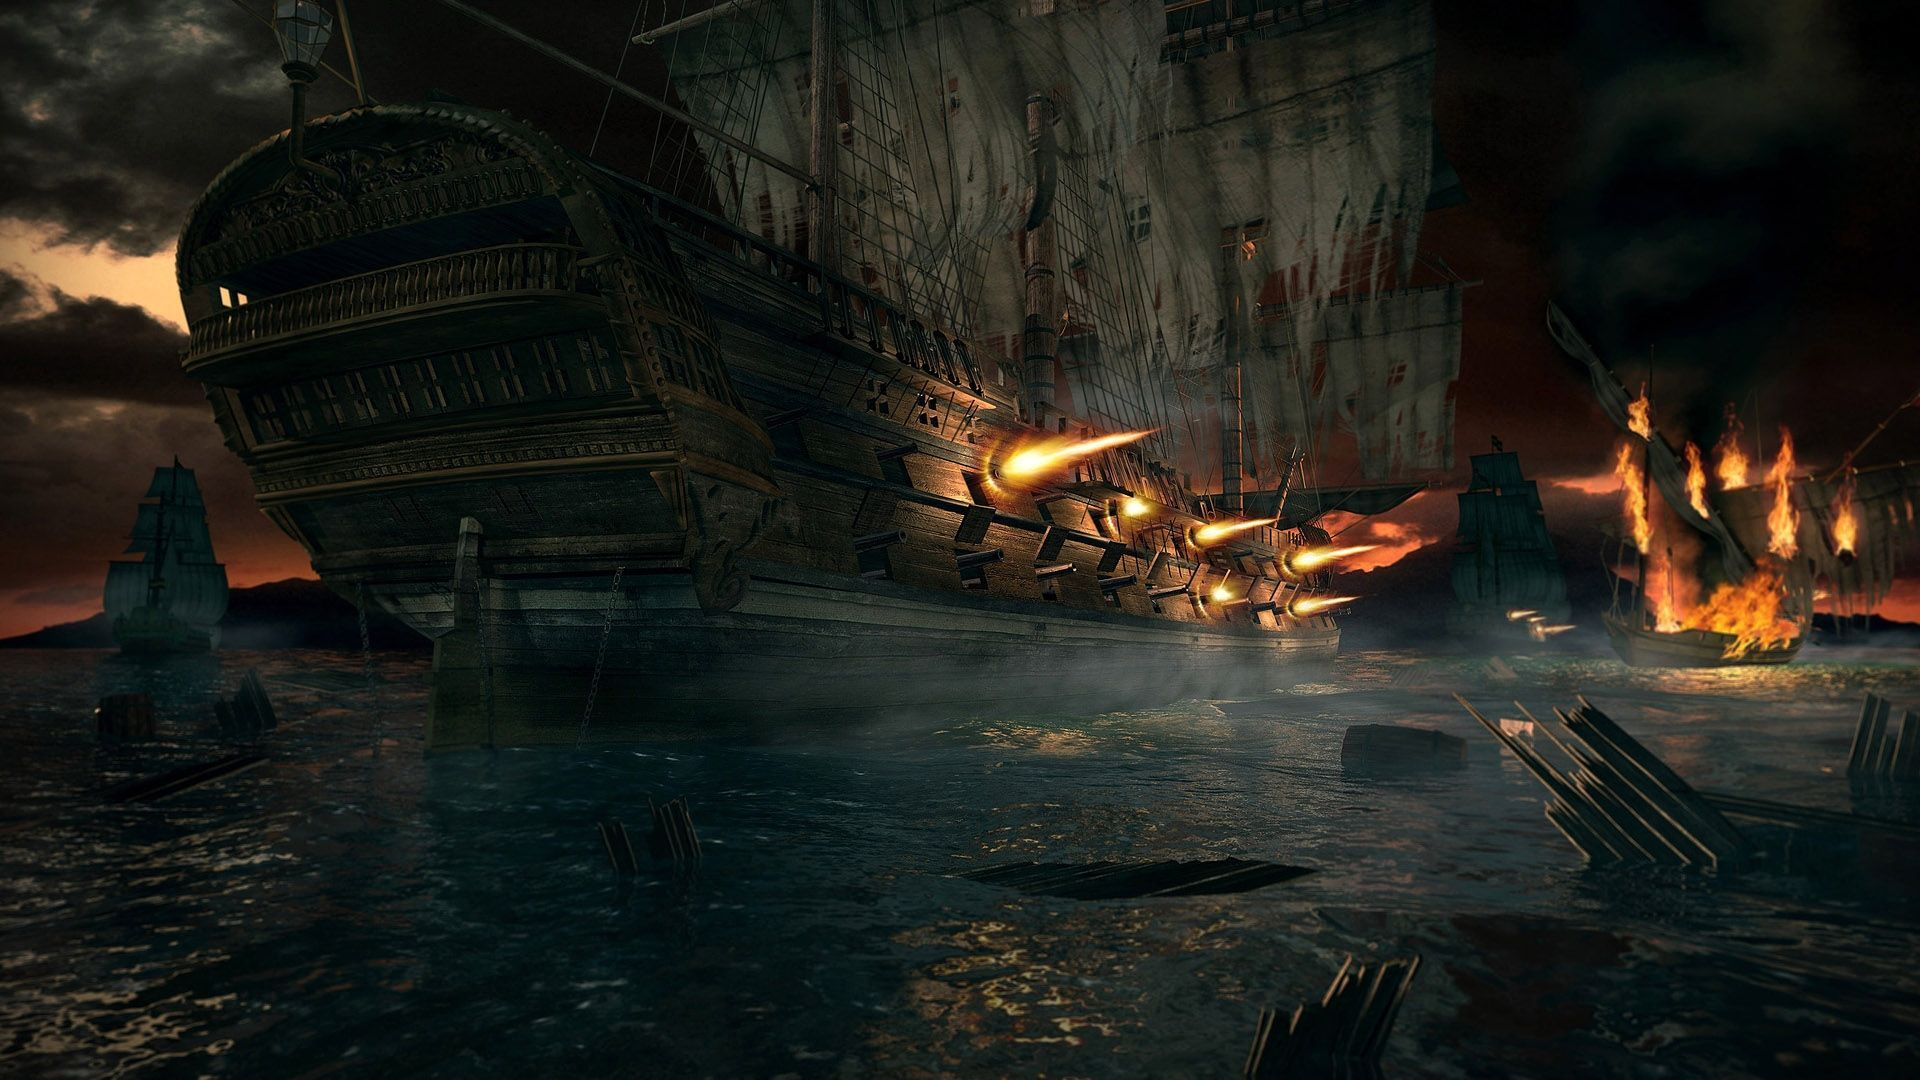 Sea battle full hd wallpaper and background image - Anime pirate wallpaper ...